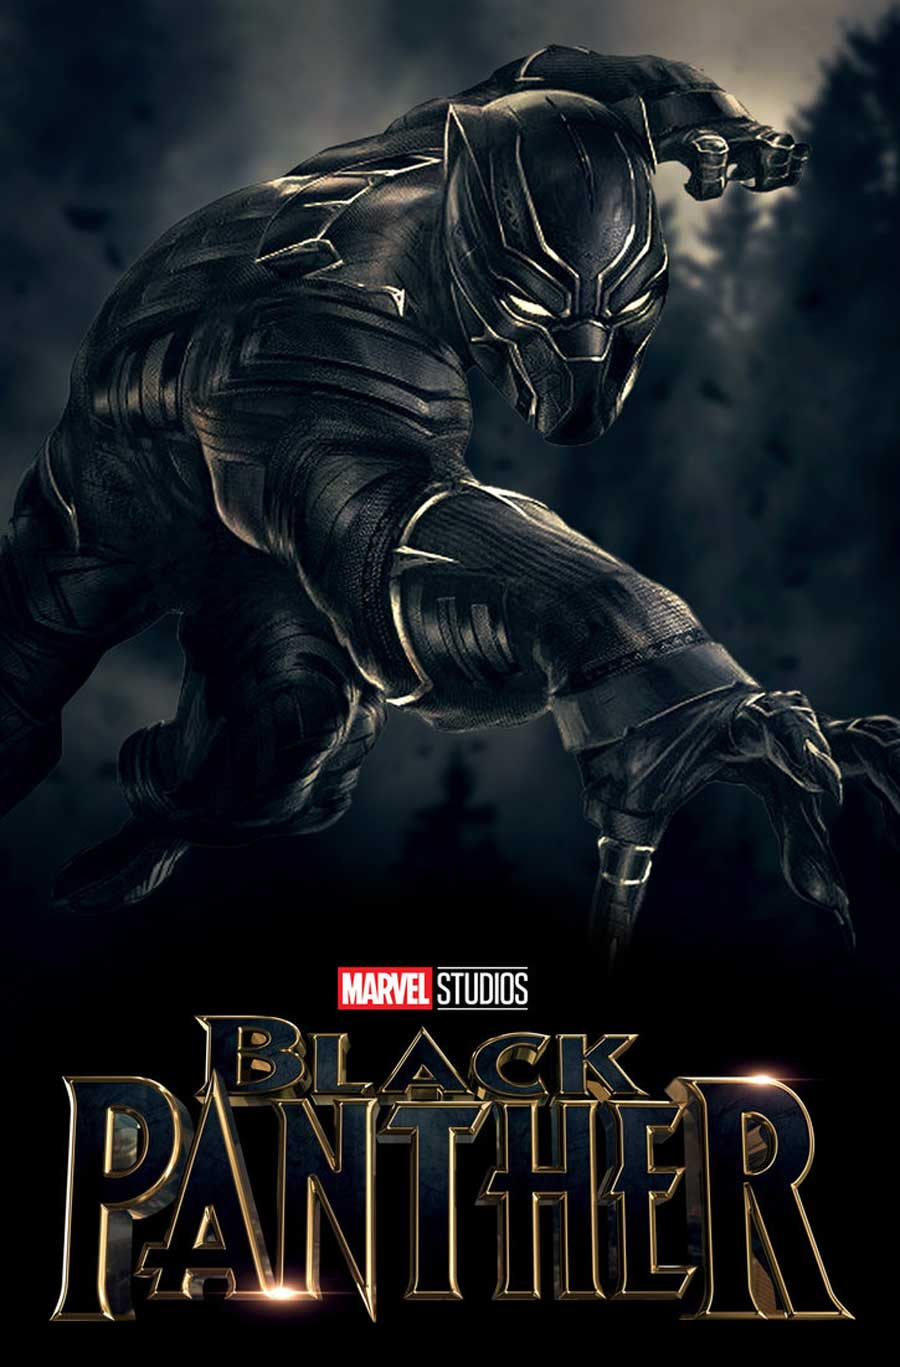 Poster for Black Panther (LUX)